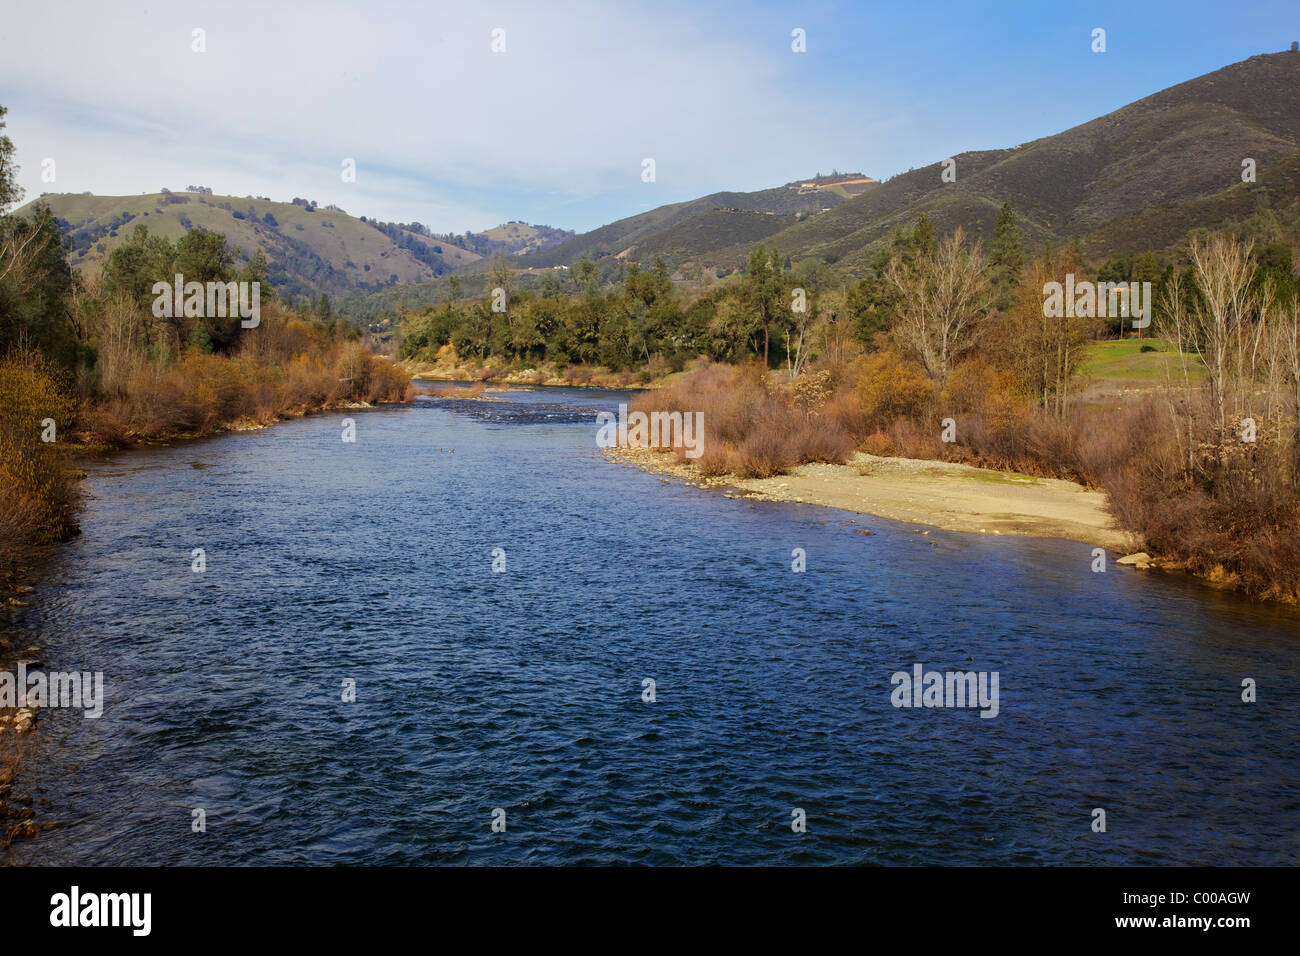 Curving blue water of the coloma river with green hills and blue sky backround Stock Photo